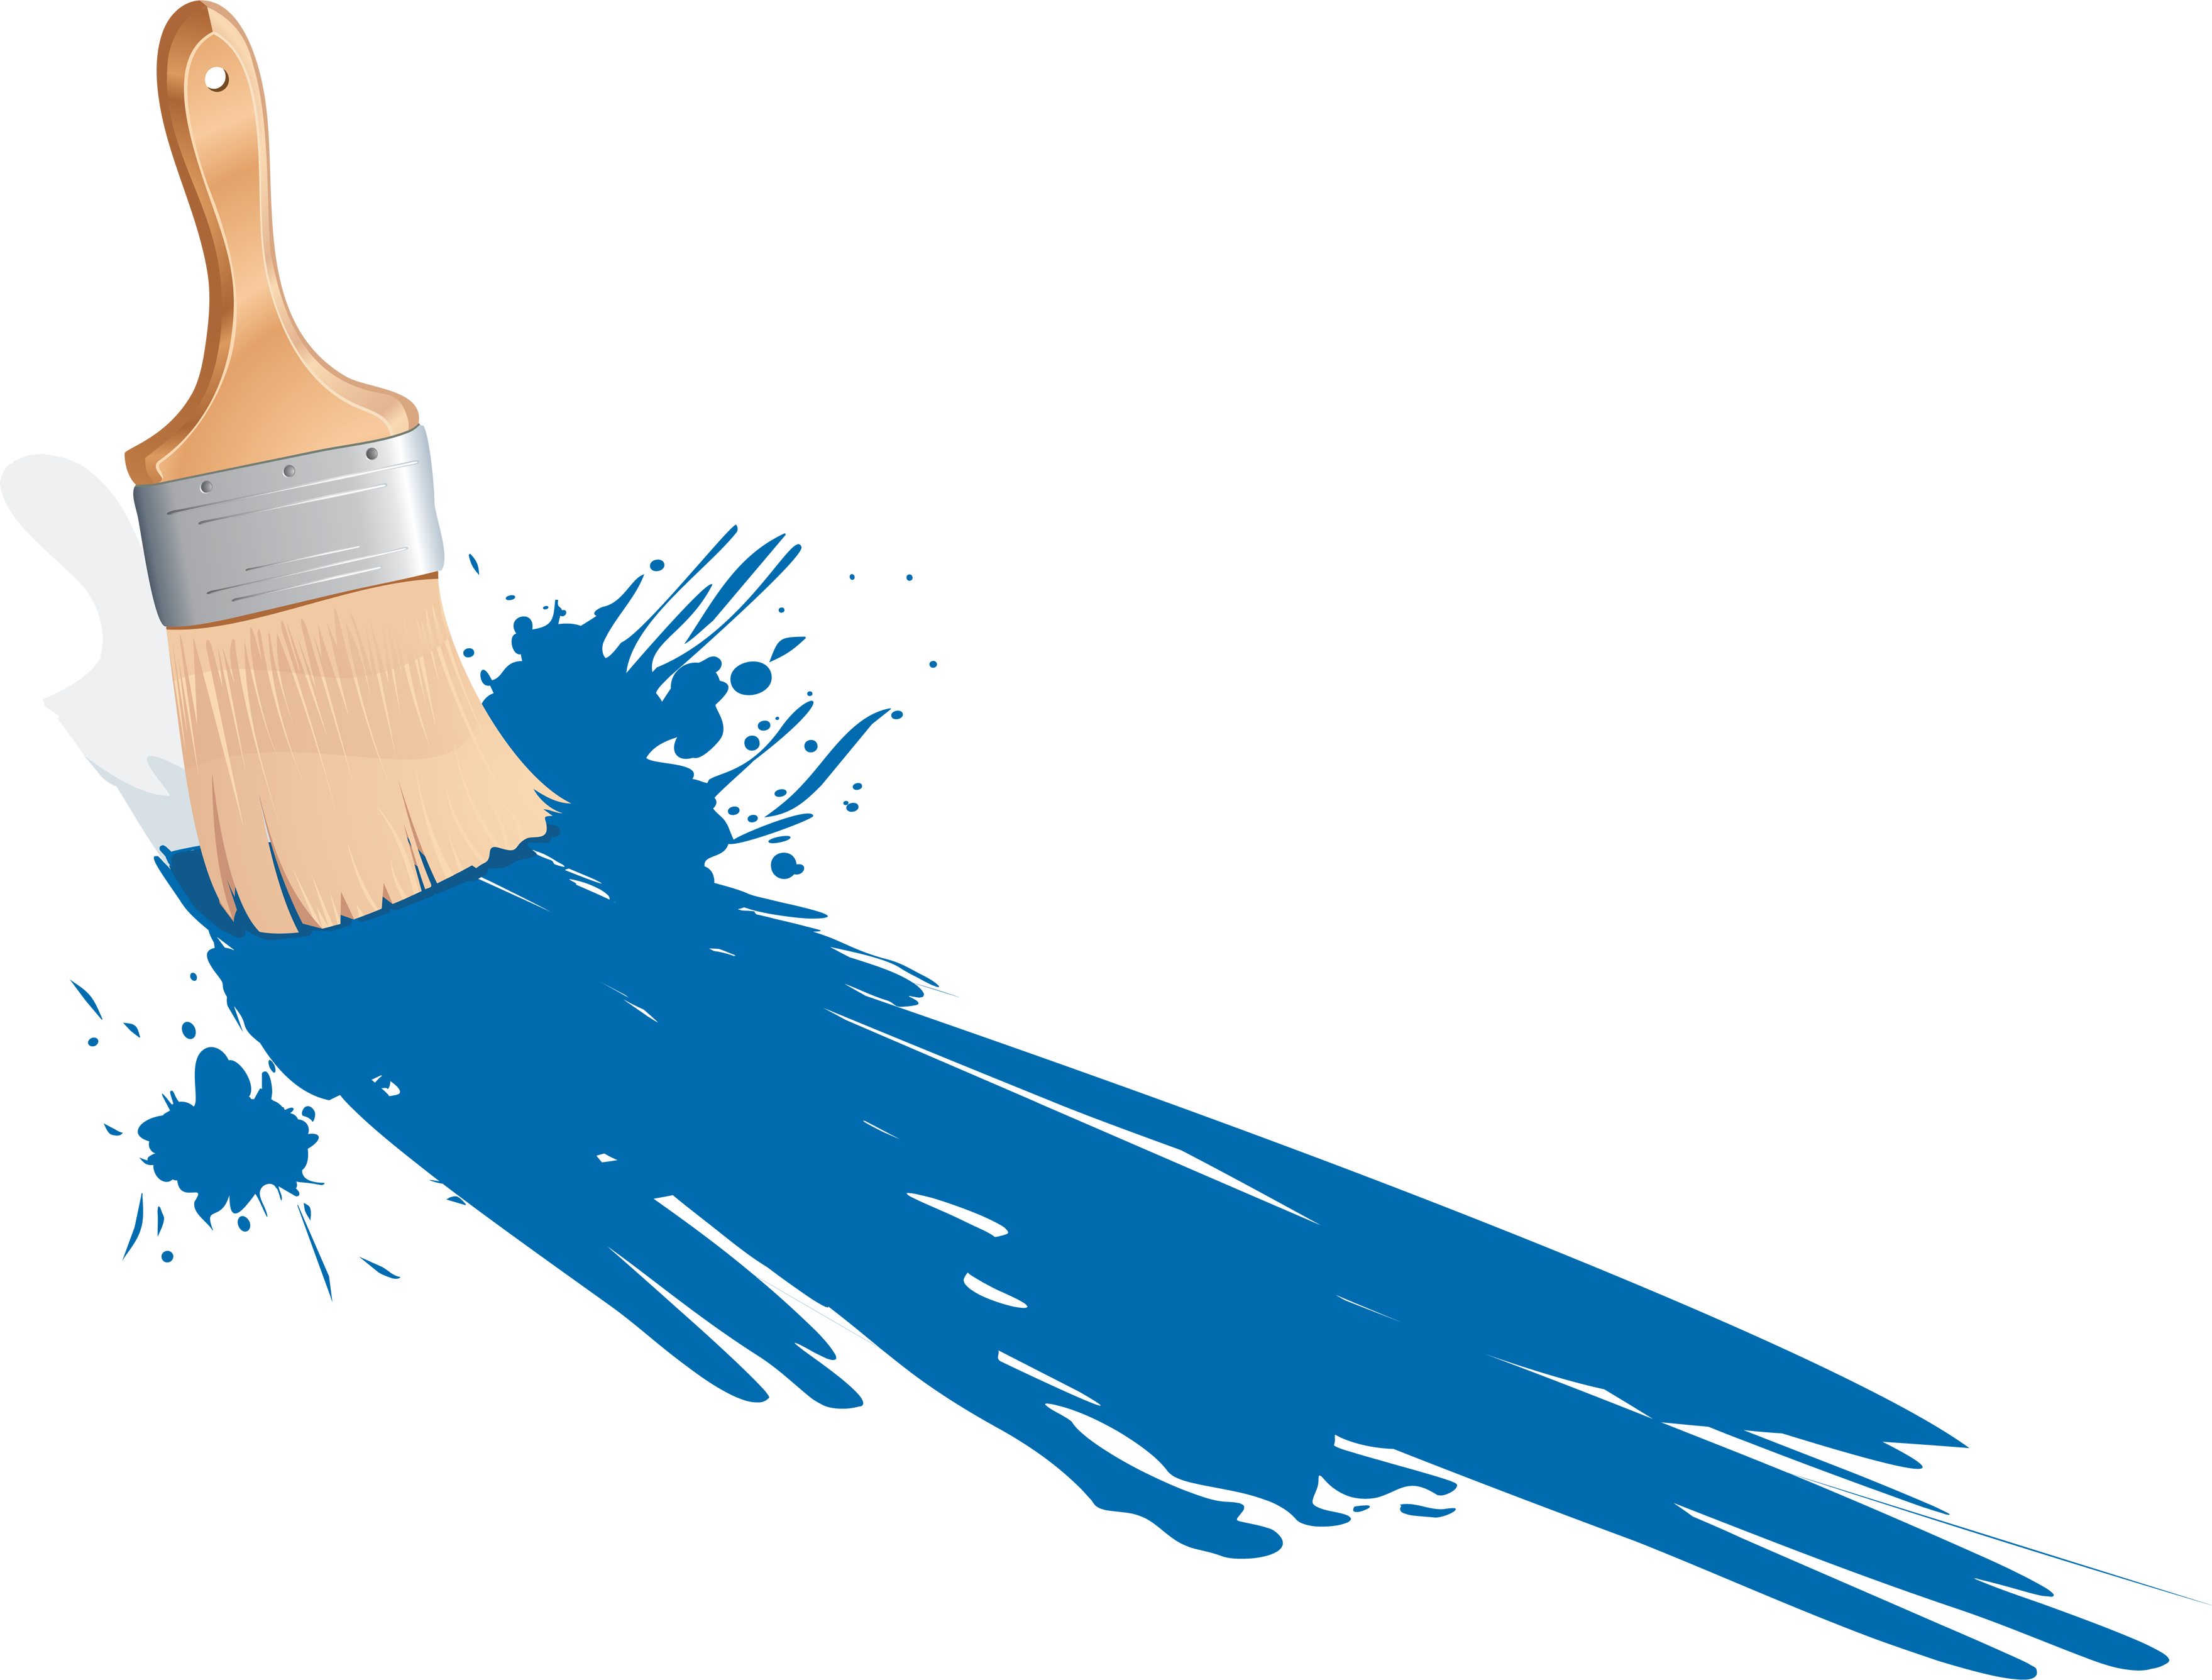 download blue paint brush image image #8743